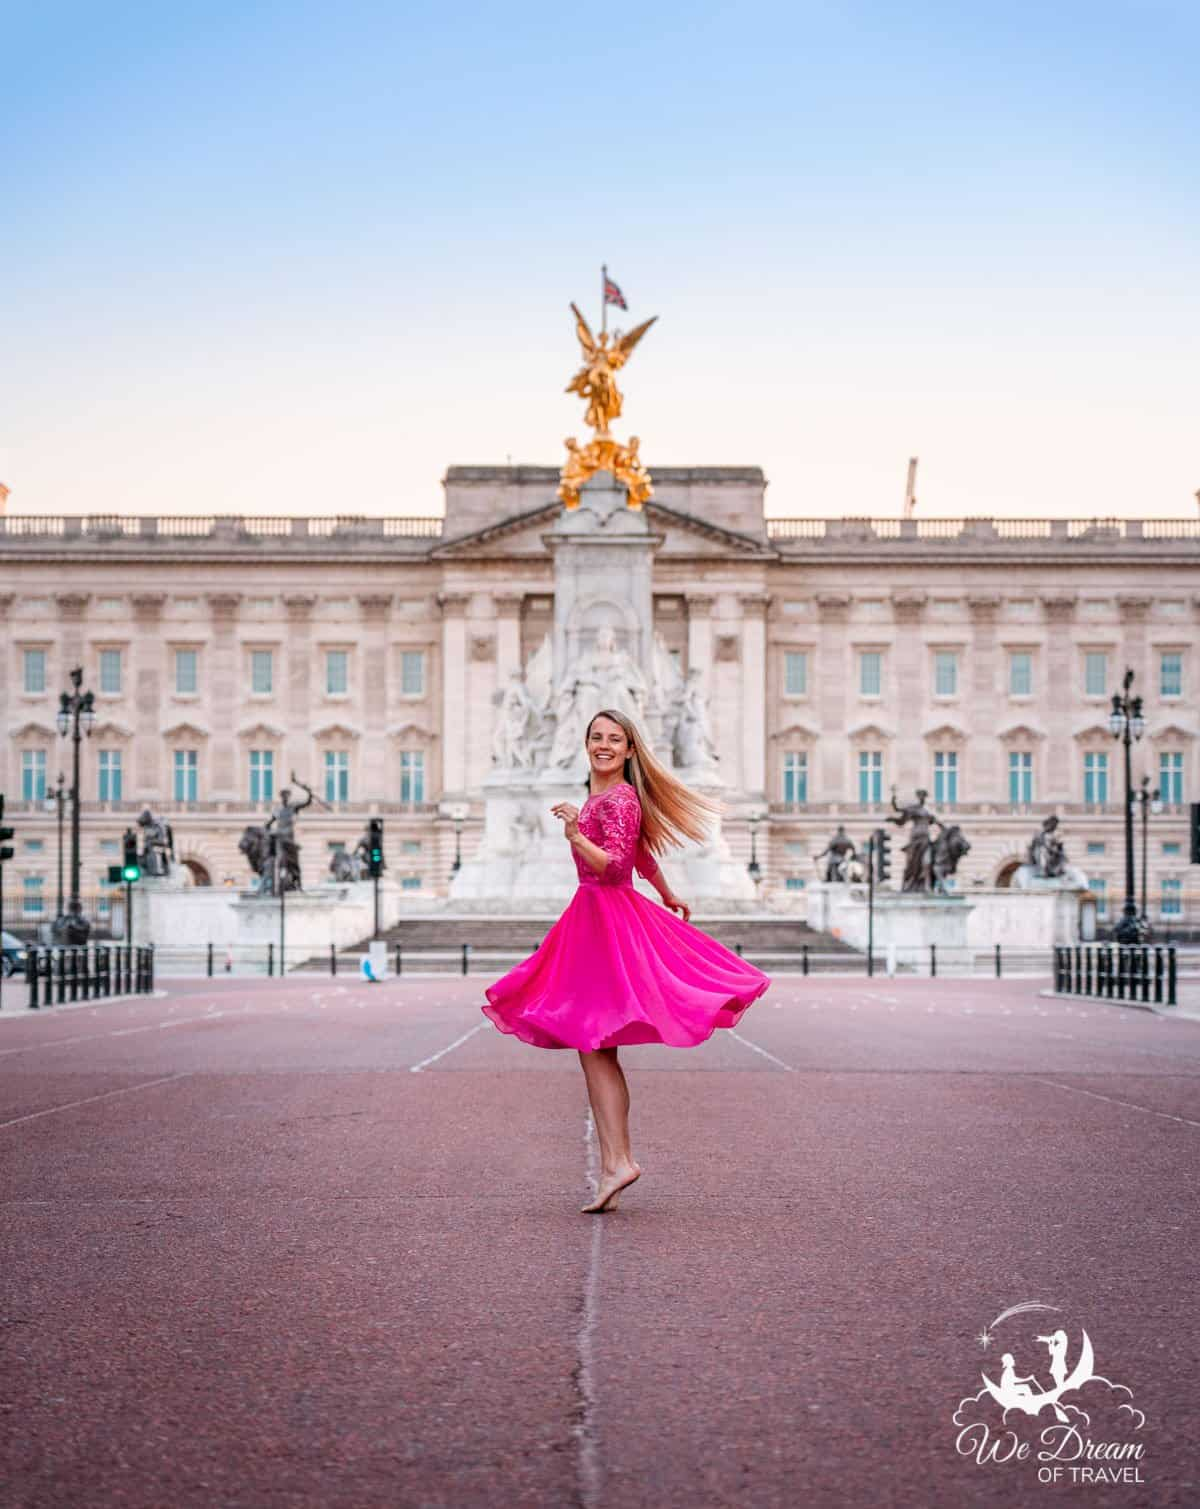 Twirling in a pink dress on The Mall in front of Buckingham Palace and Victoria Memorial at sunset